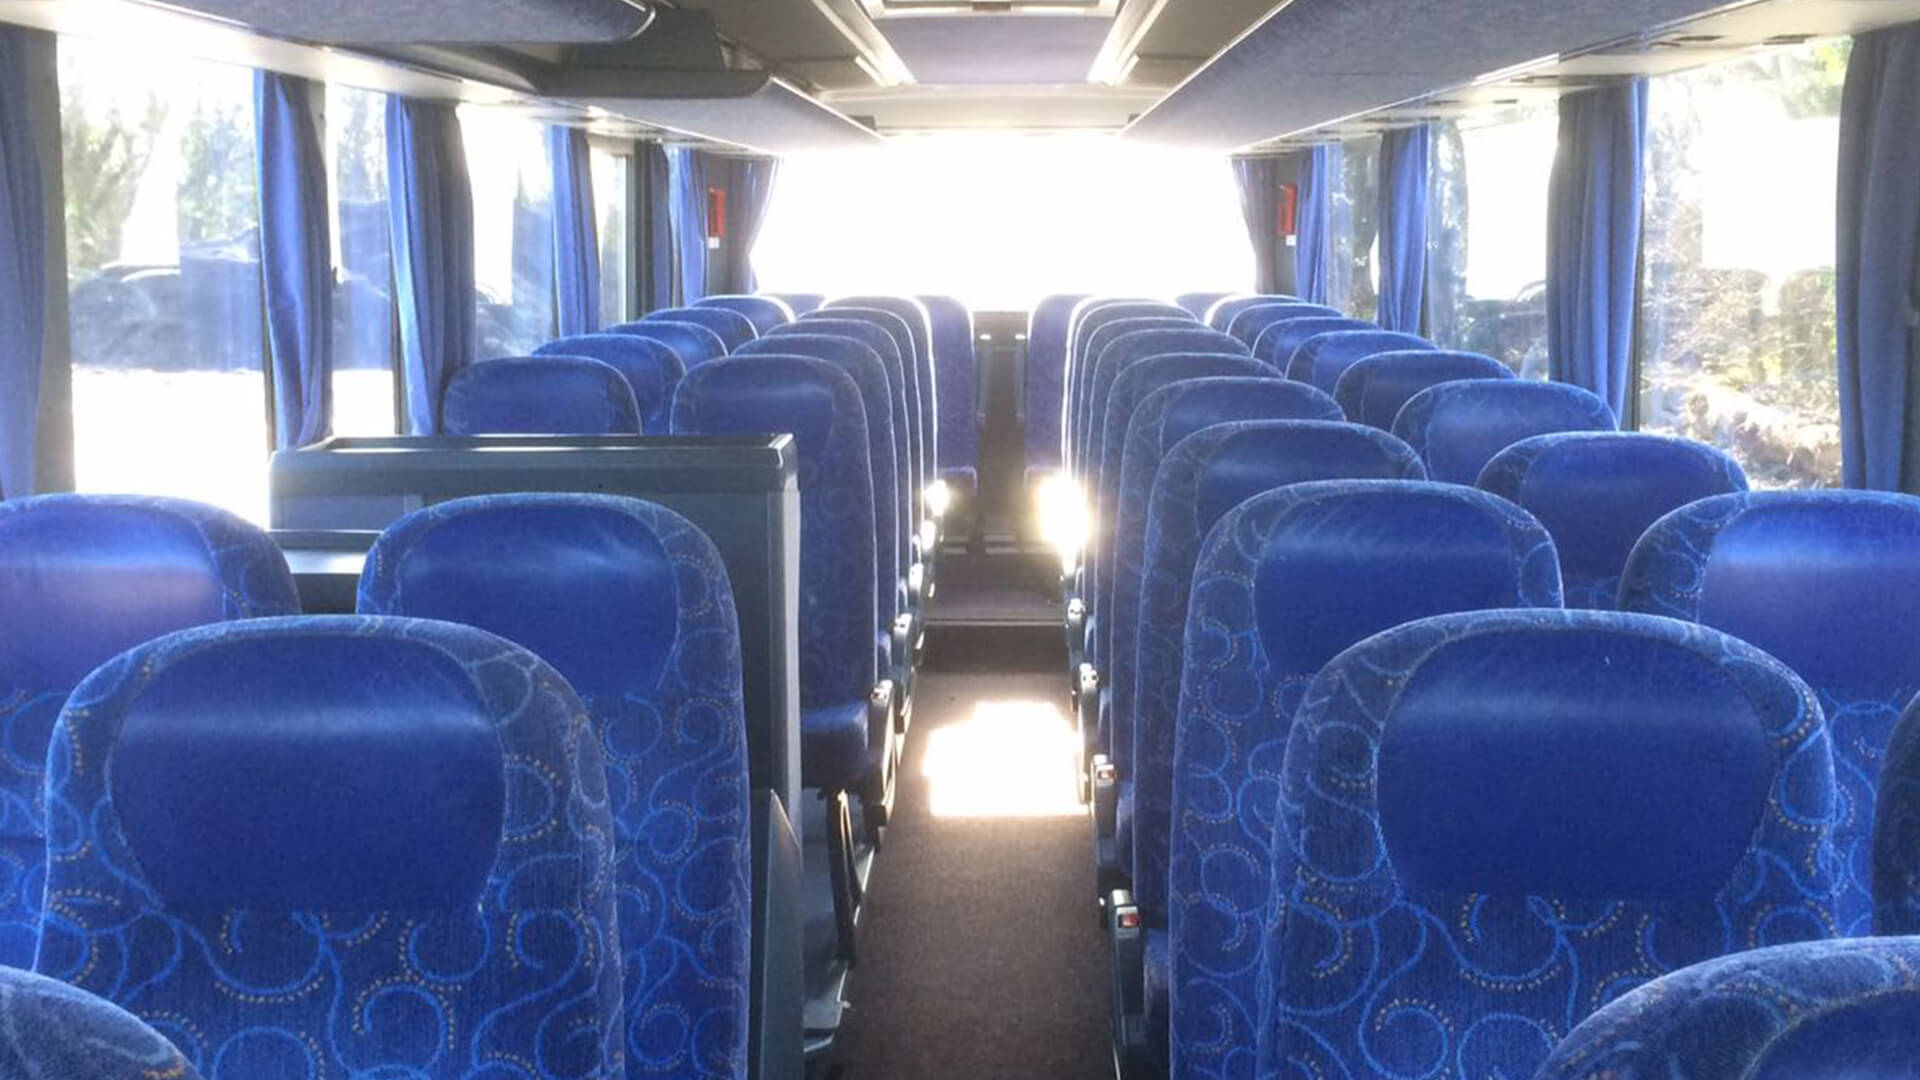 battersbys_coaches_walkden_coach_hire_manchester_bolton_worsley_introduction-2-mobile